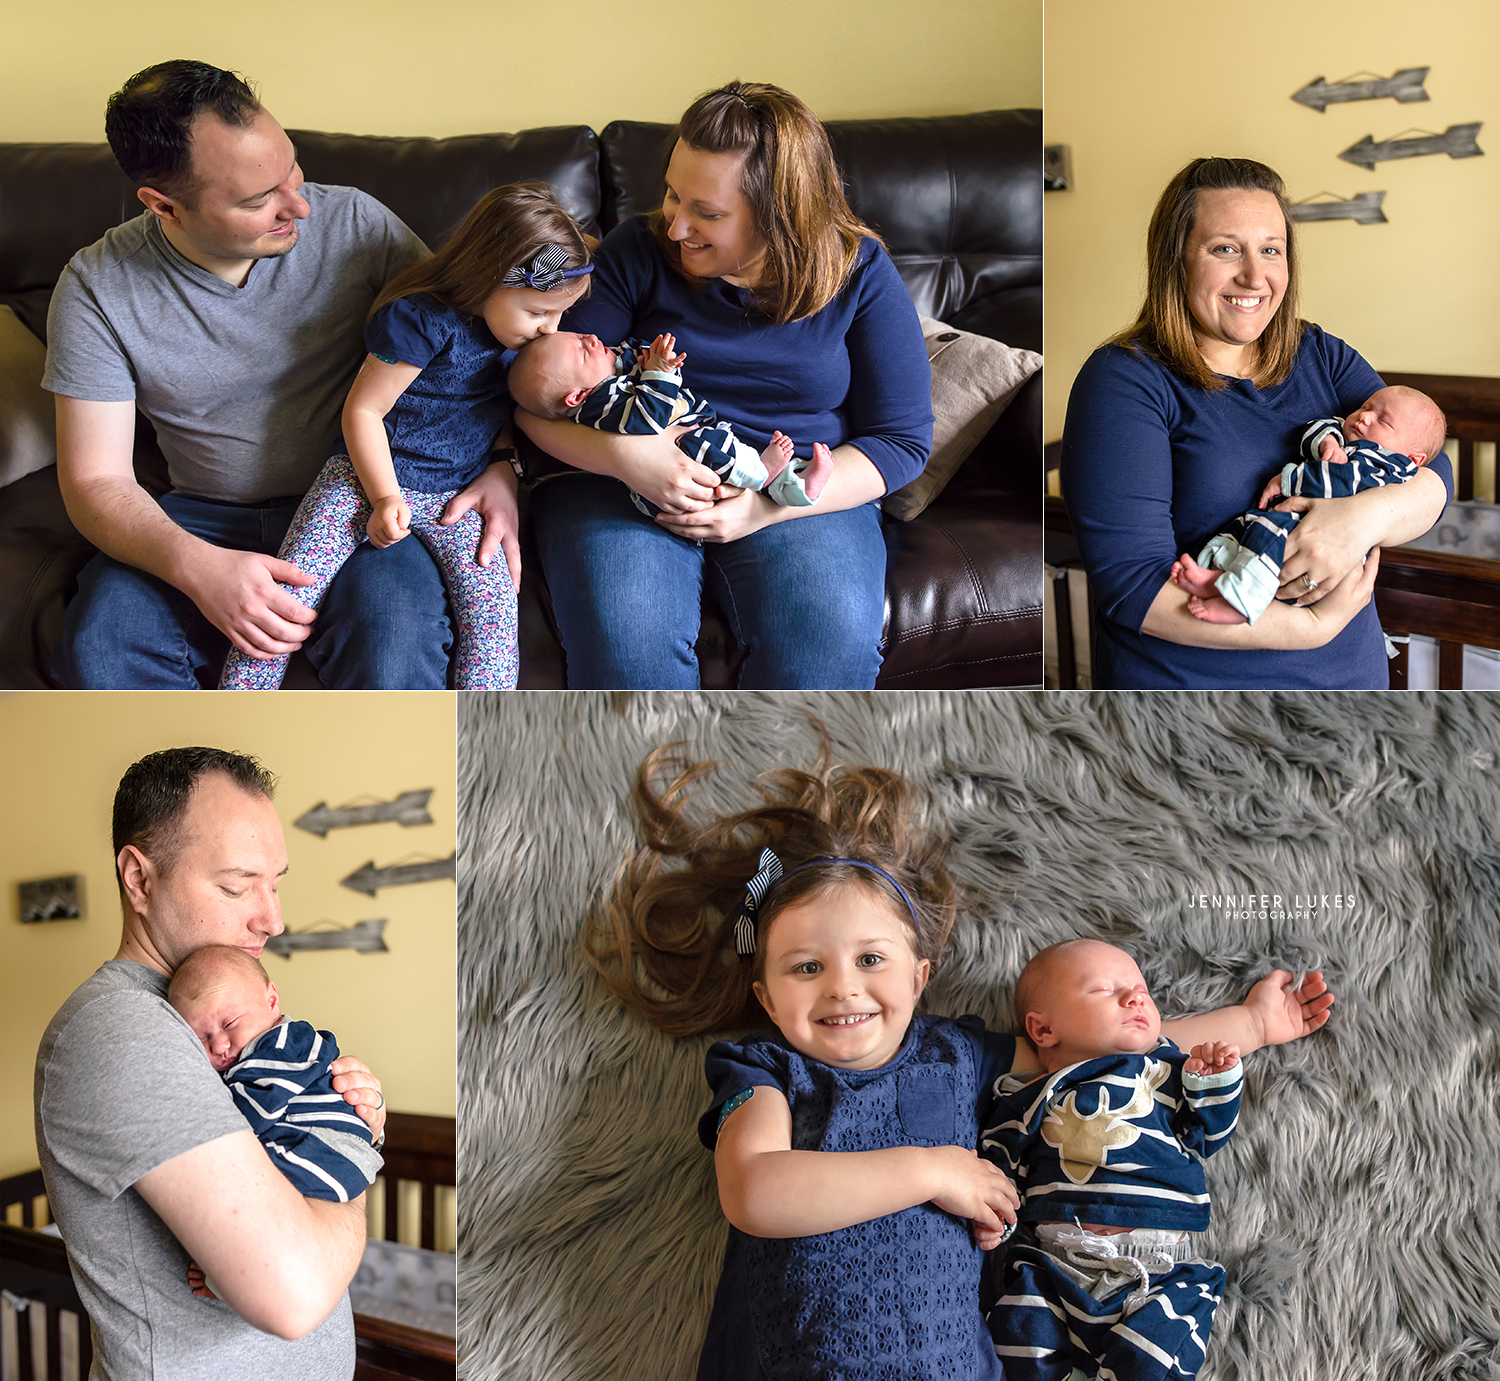 Natural light in-home lifestyle newborn photography session in Sammamish with family in various shades of navy, gray, and gold.